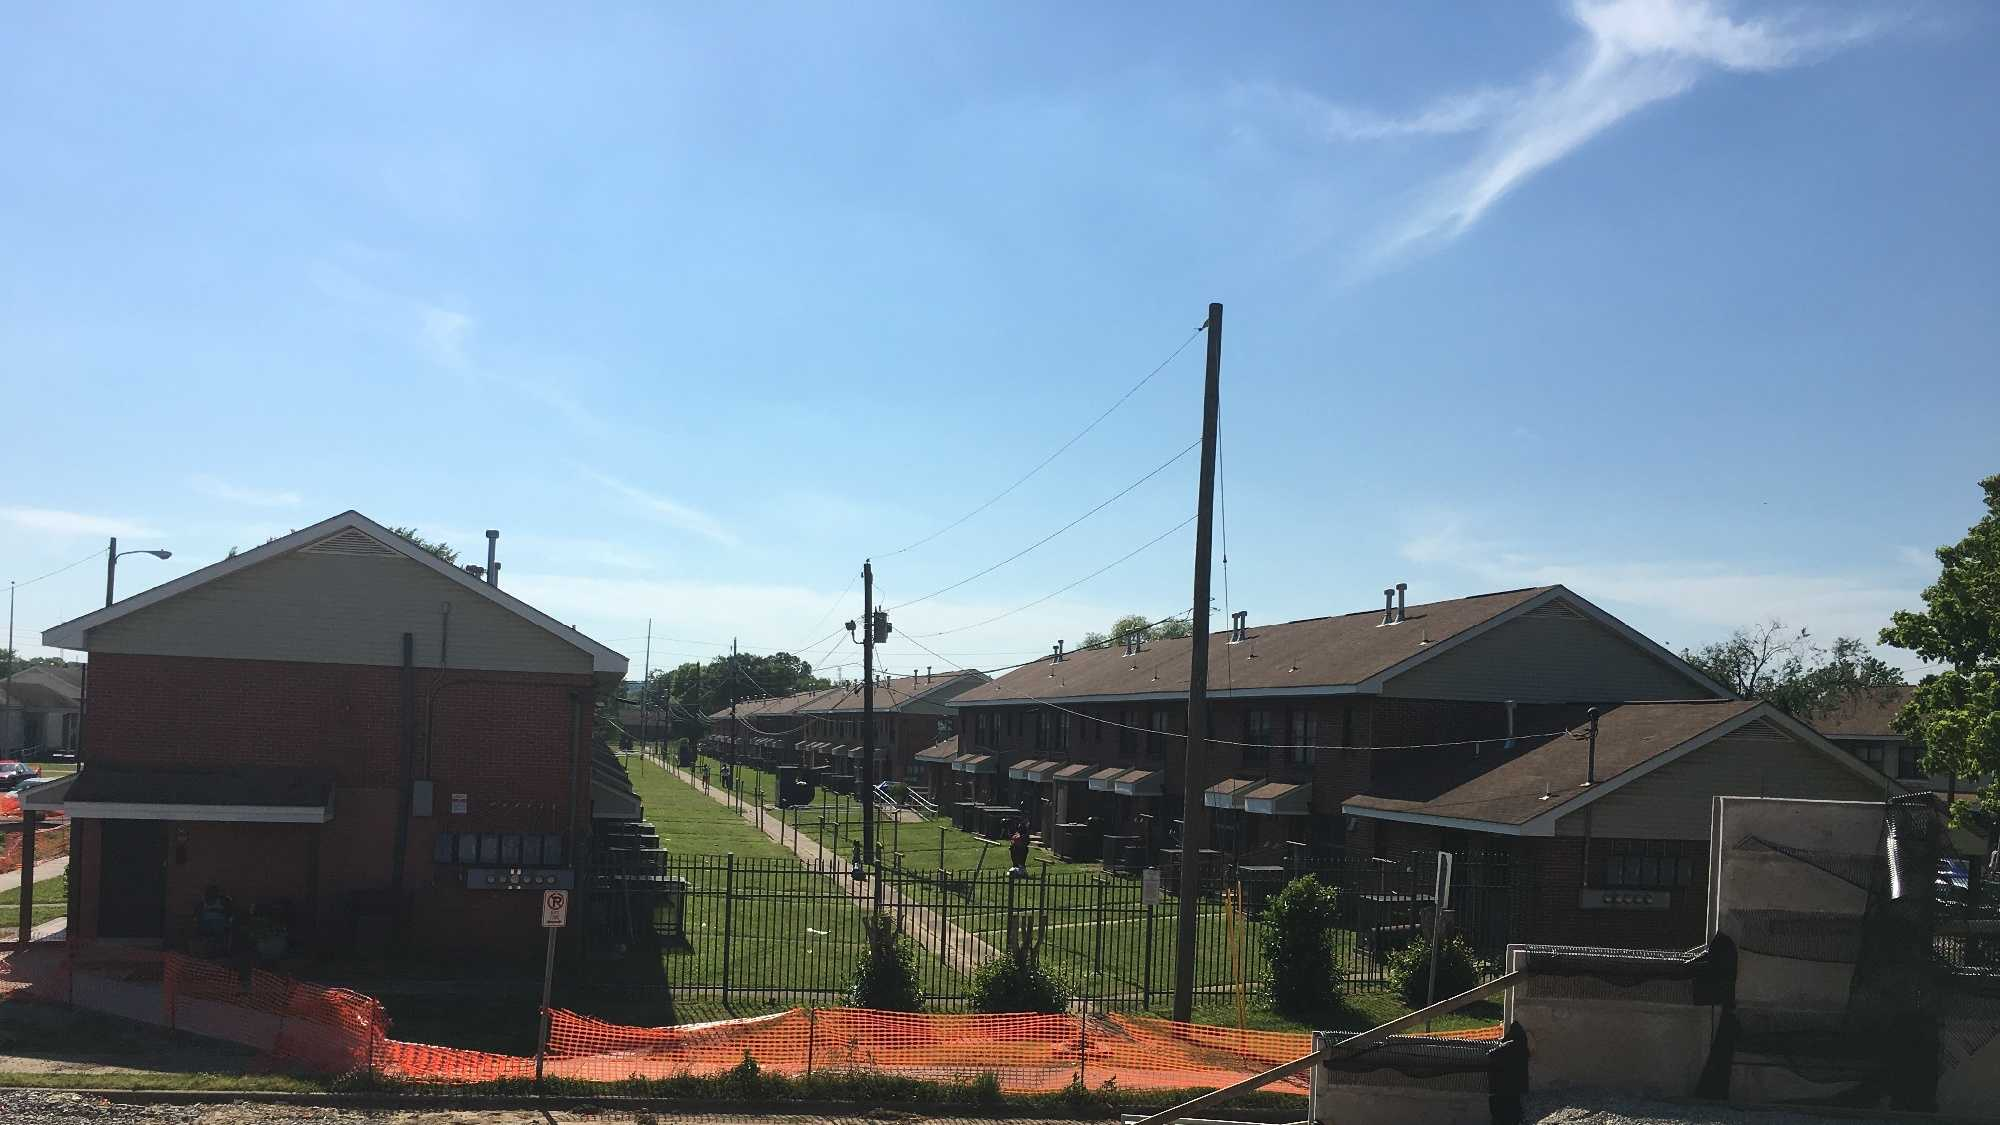 A major overhaul is coming to a historic public housing community in north Birmingham, the 52-year-old Collegeville complex.